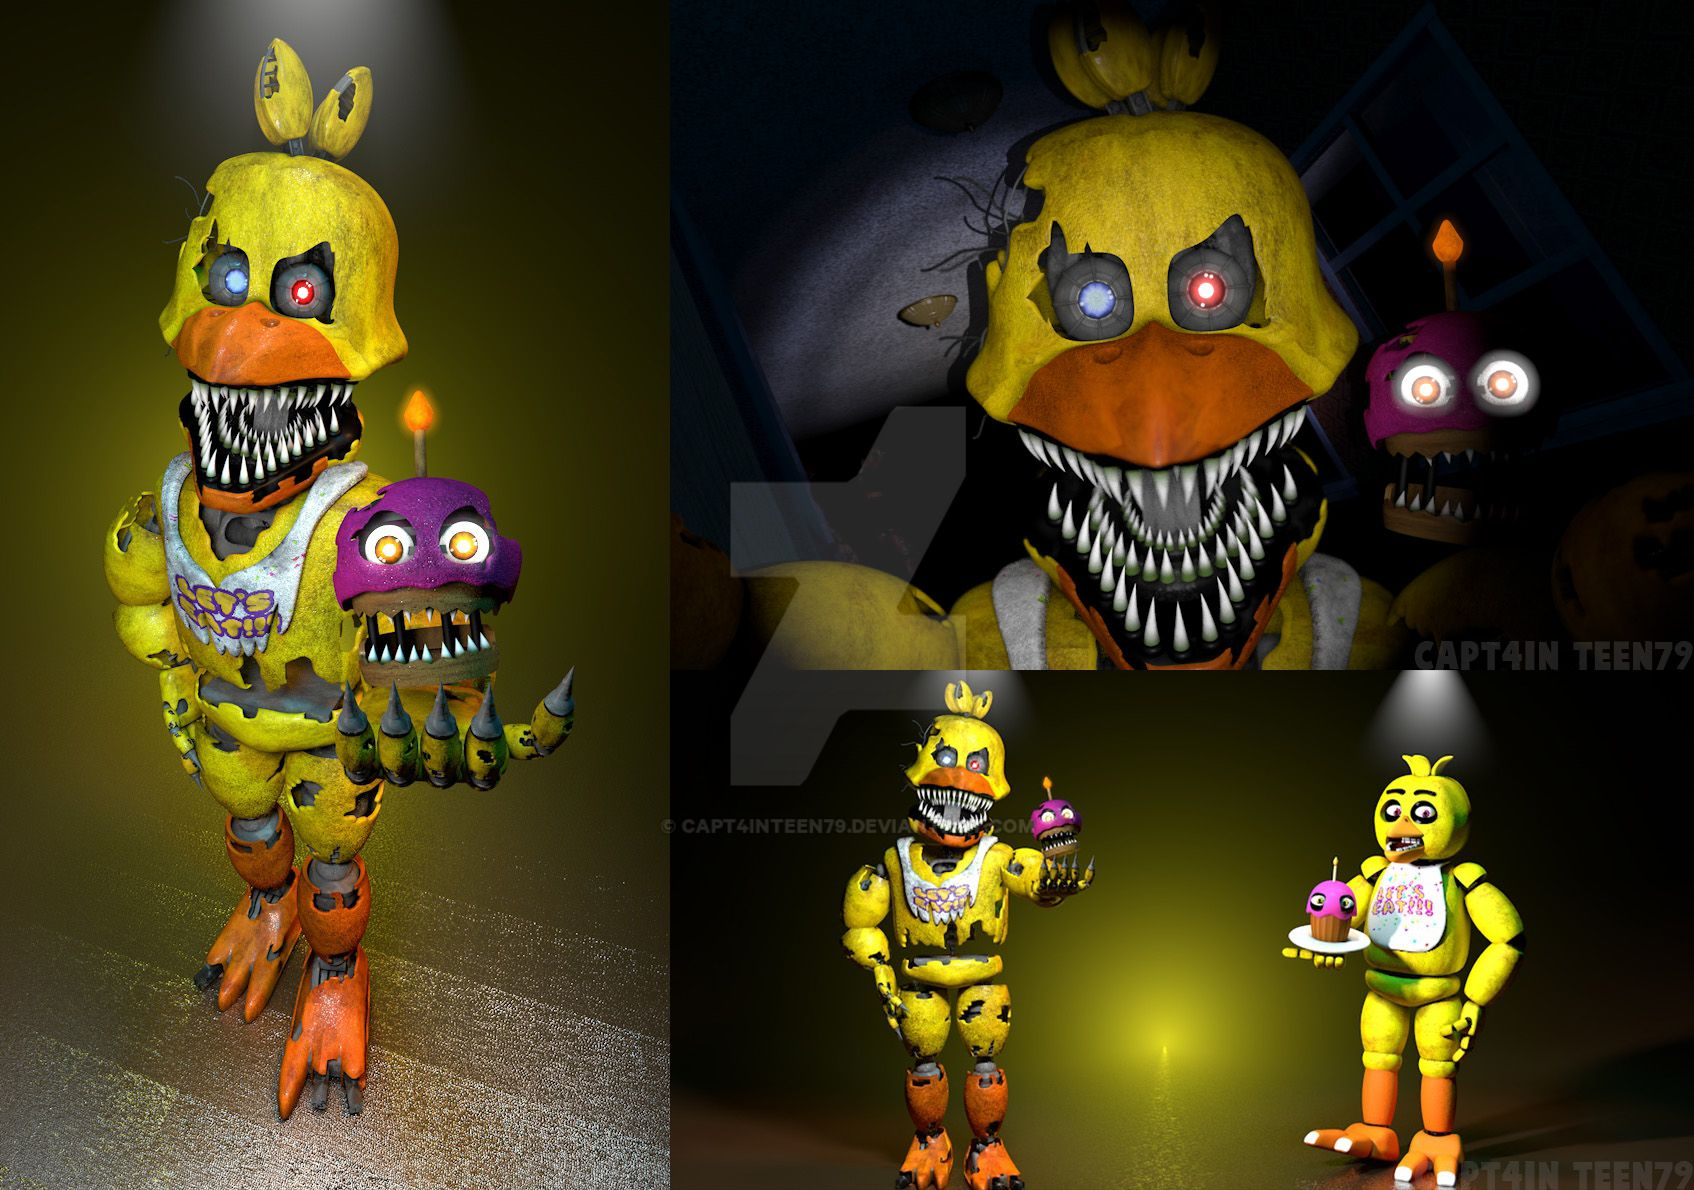 Nightmare Chica Full Body By Capt4inTeen79 On DeviantArt